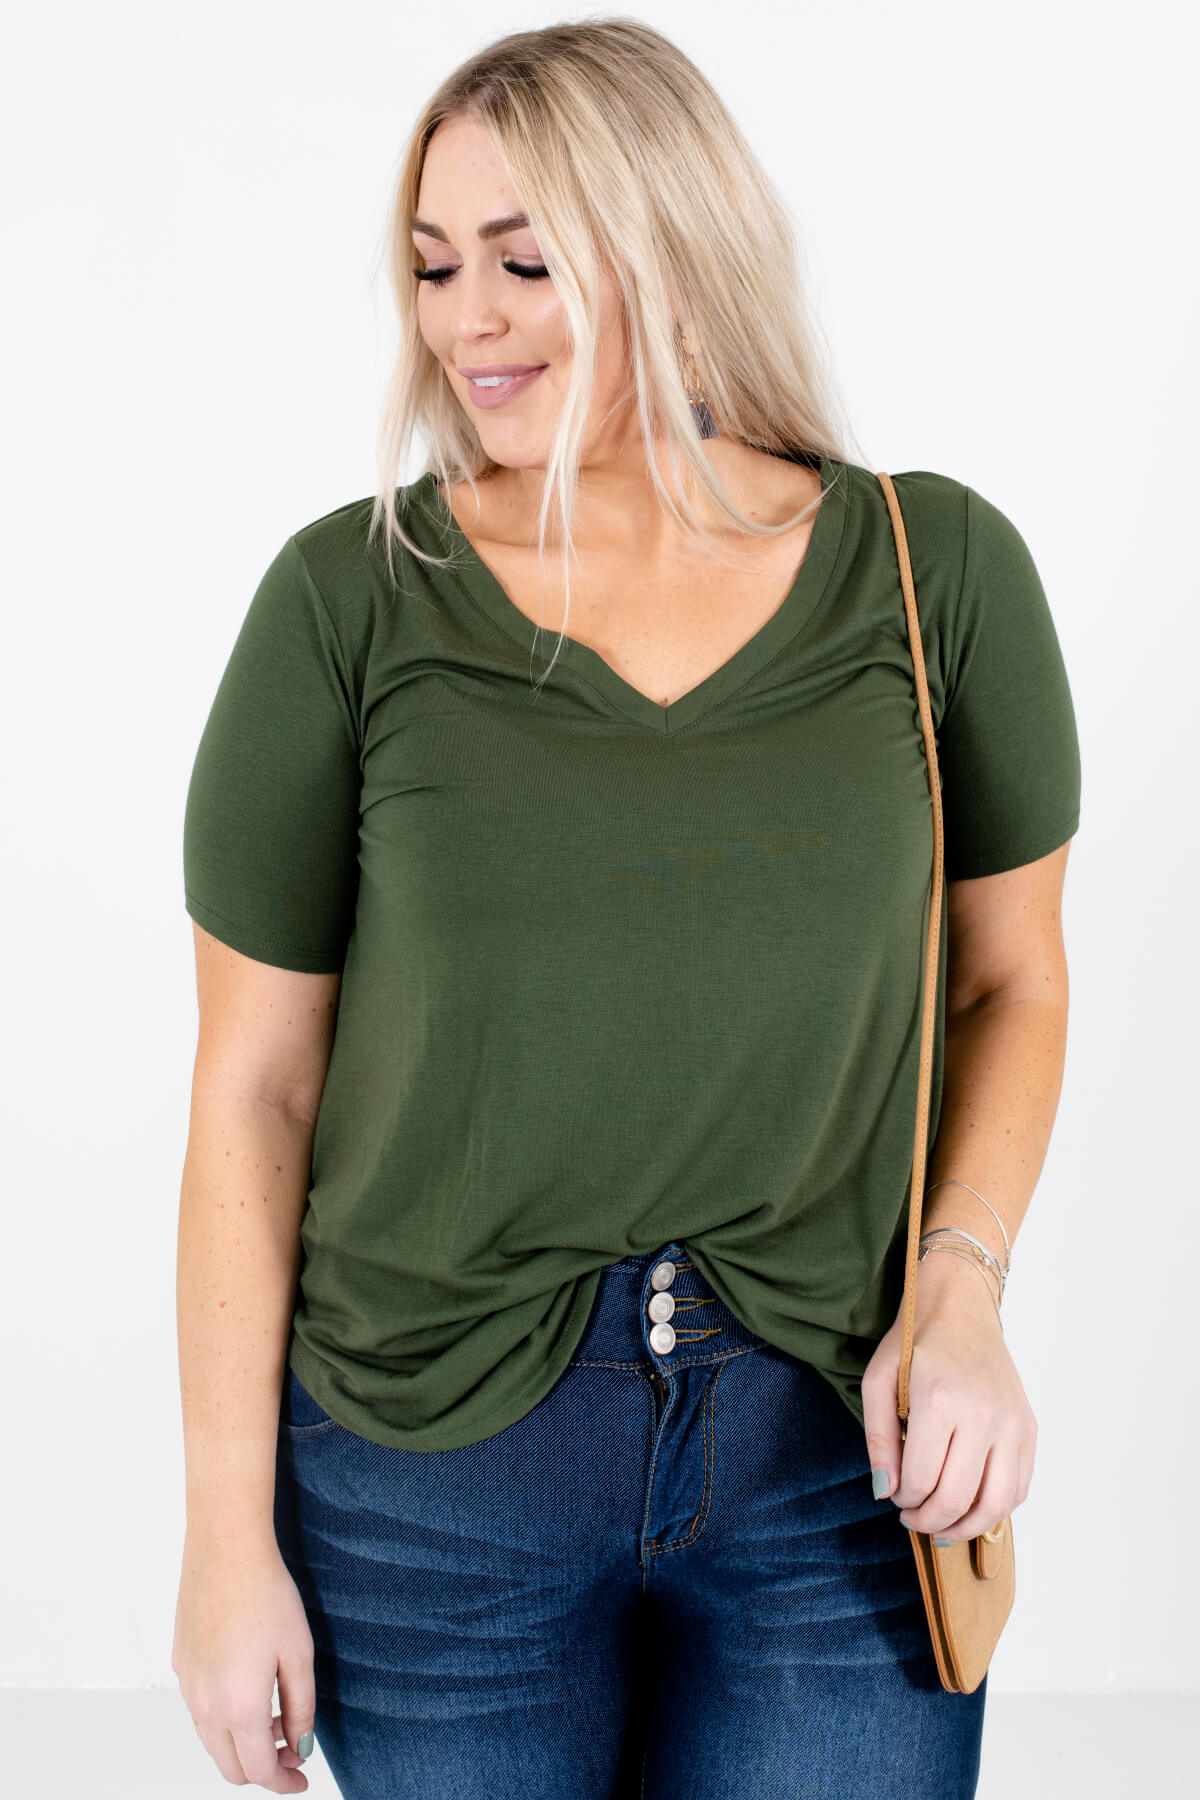 Green V-Neckline Boutique Tops for Women